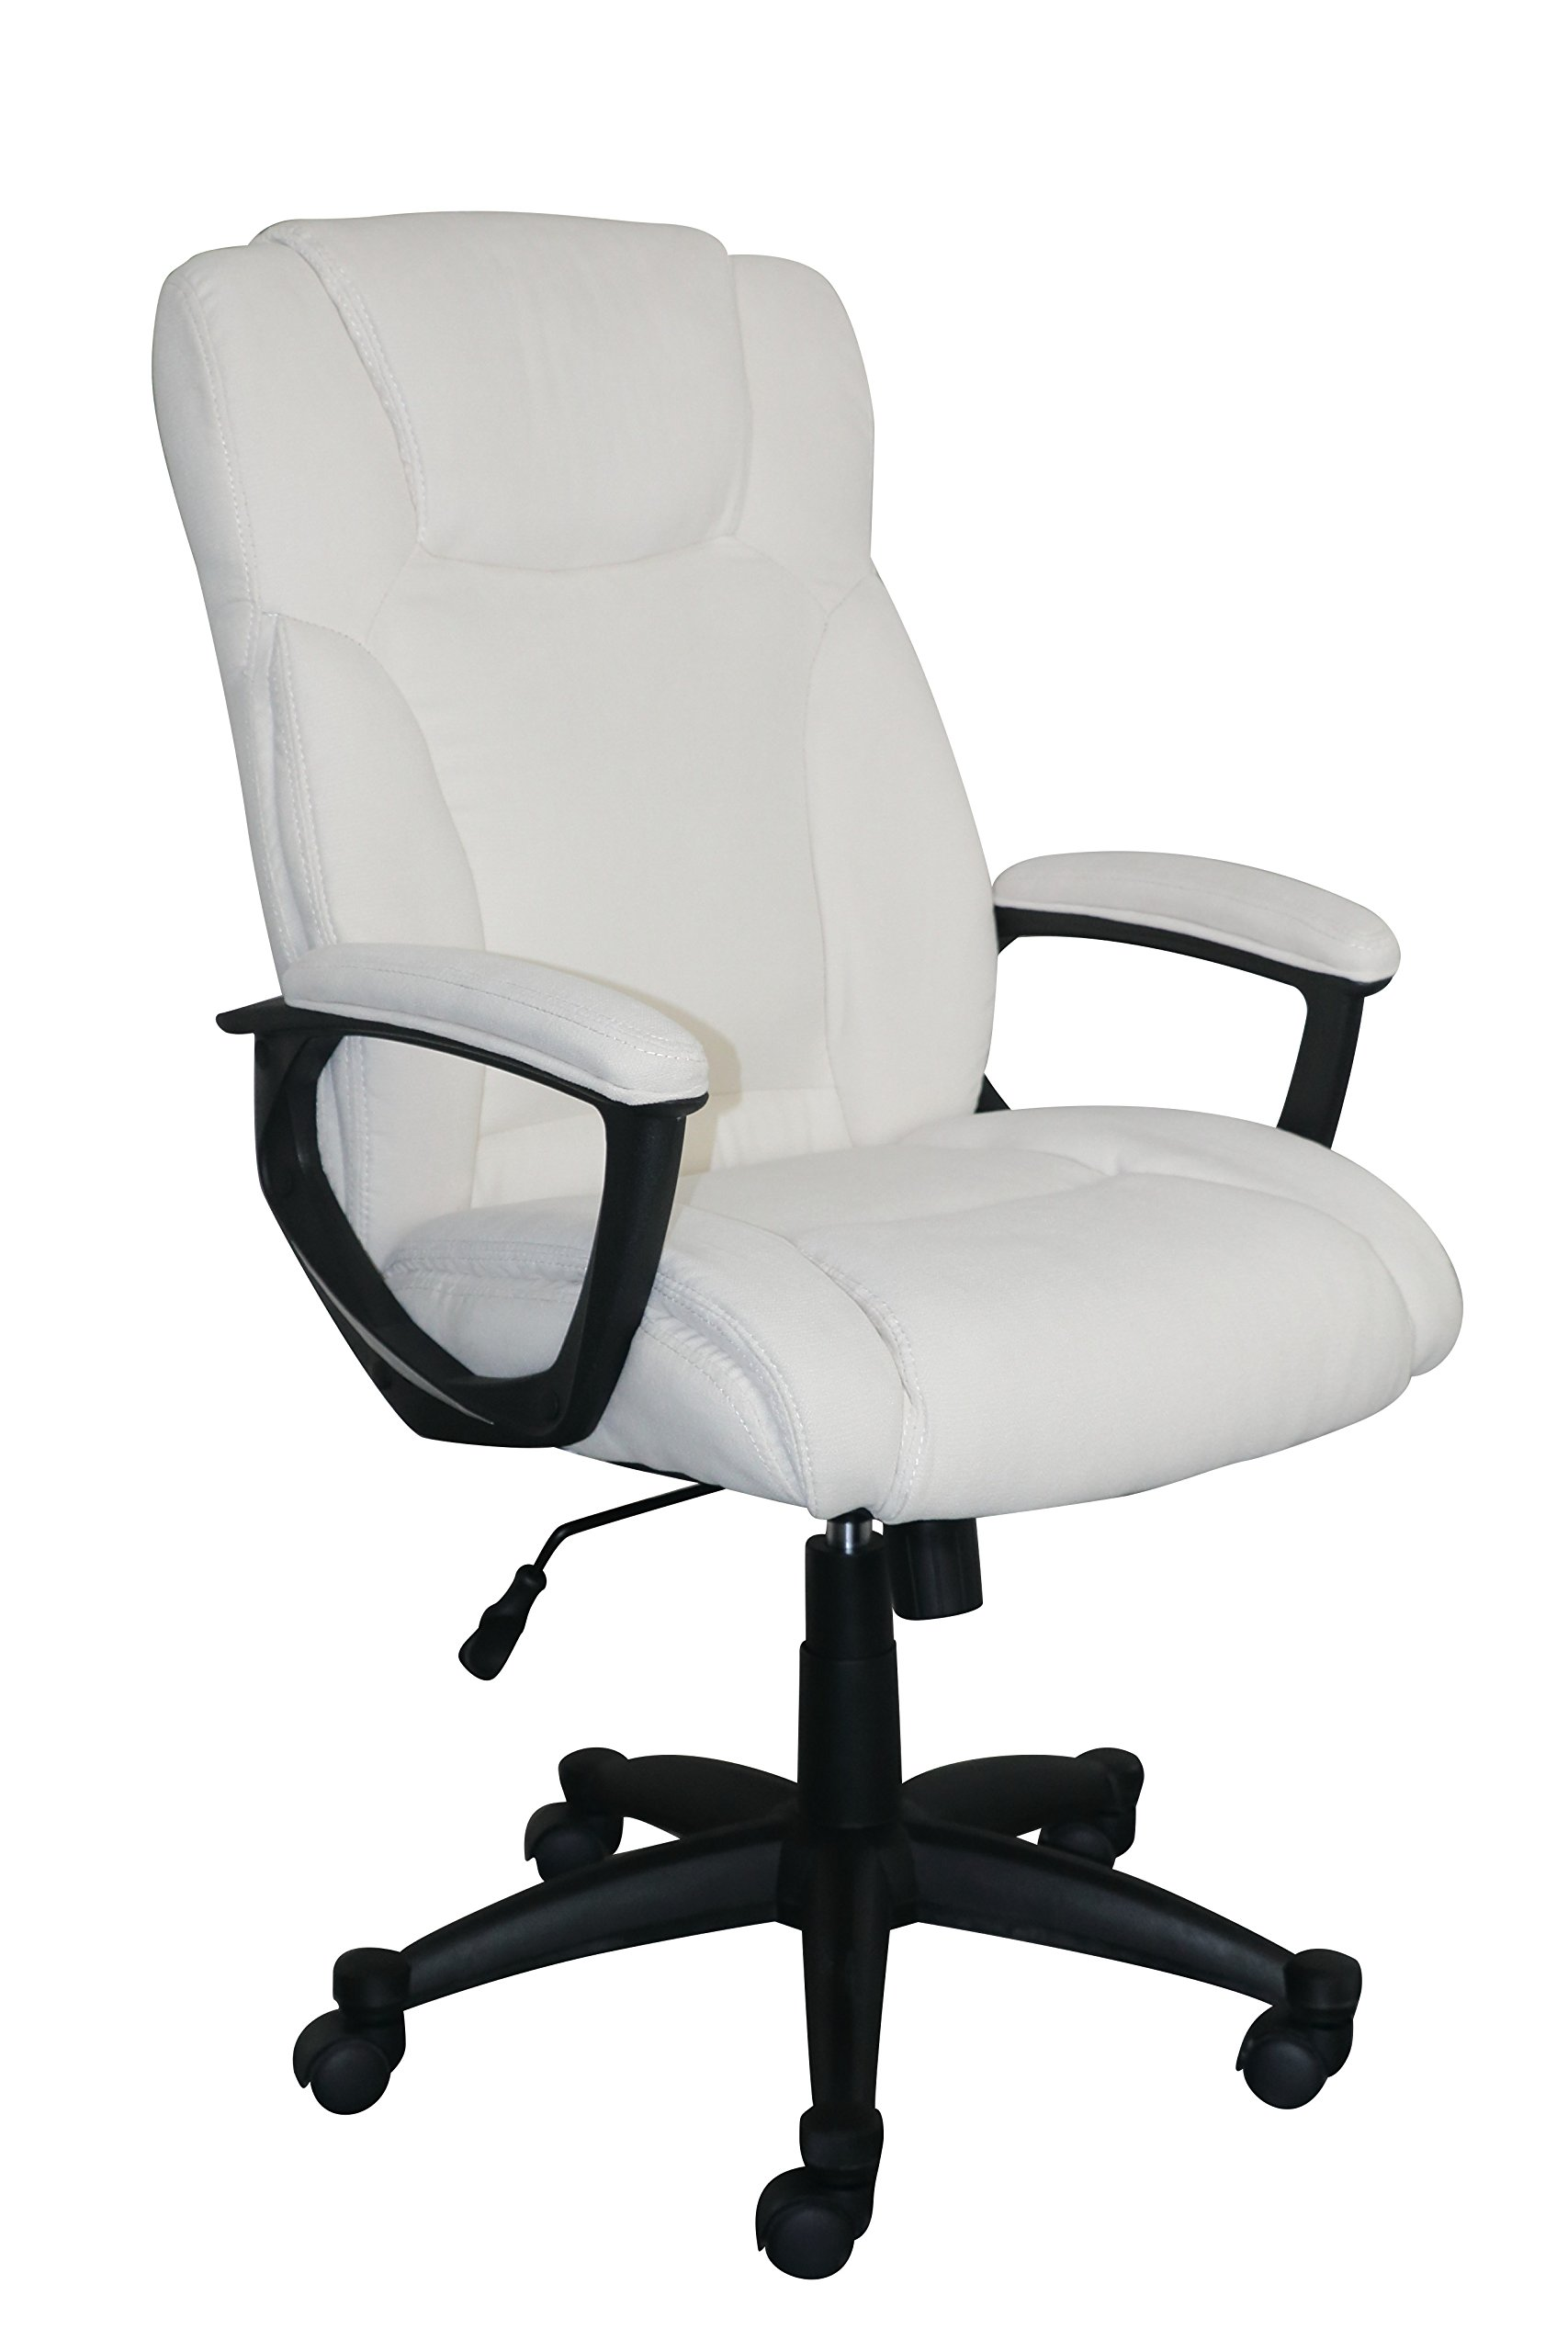 Serta Style Hannah II Office Chair, Microfiber, Ivory